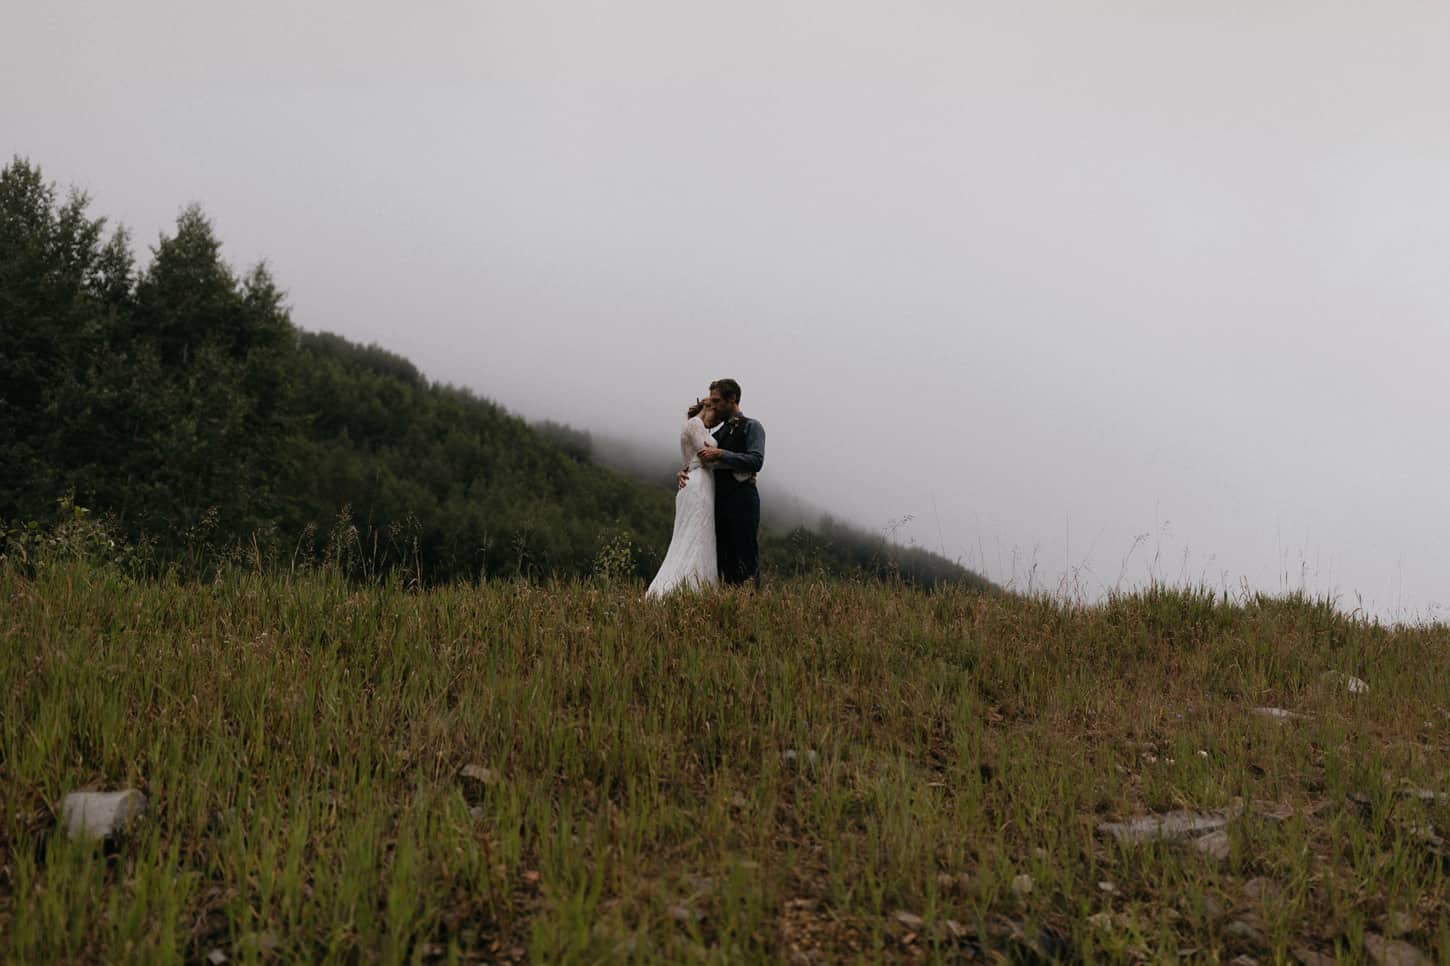 moody emotional and dark wedding photography in the mountains of Colorado